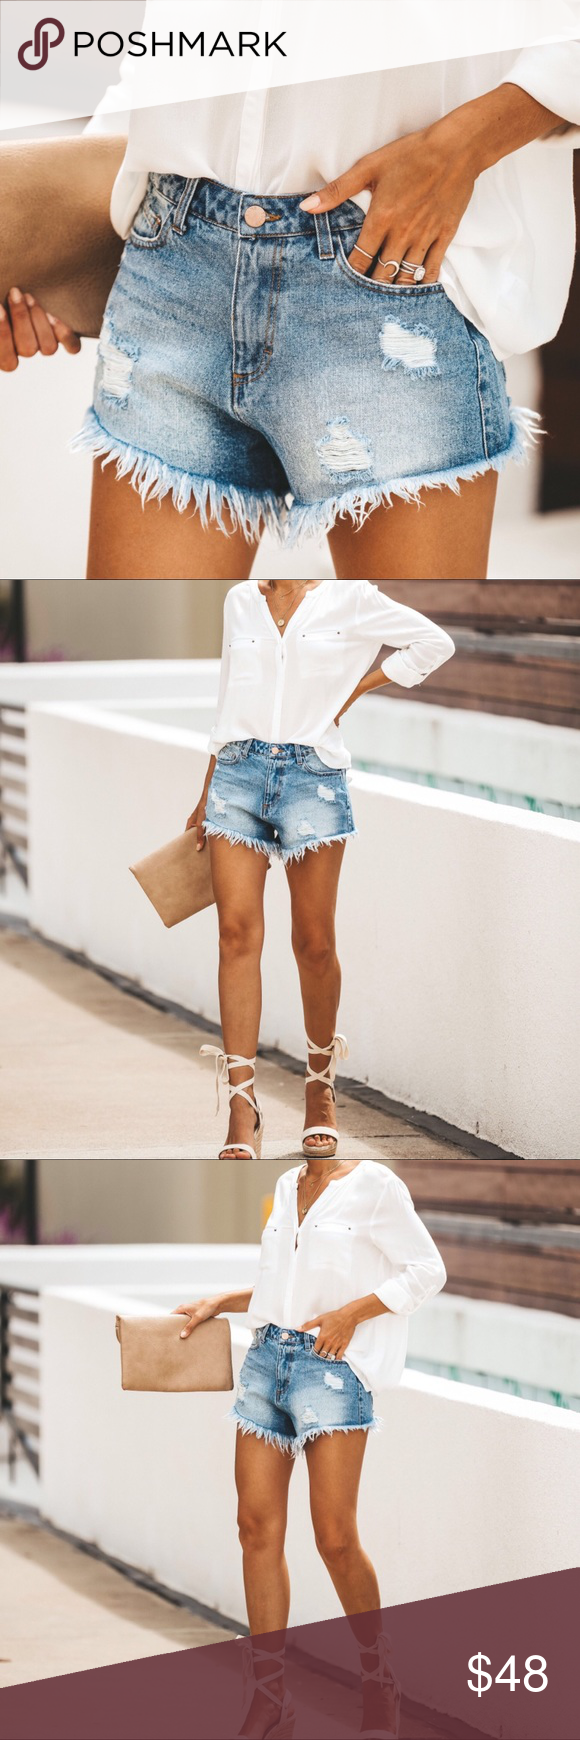 """JUST IN‼️ Shelby Frayed Cutoff Shorts Same great style as the Colby grey wash but with a cool vintage wash! A high rise cut off that sits relaxed on the hip for a perfect fit. Front and back distressing with a hand frayed hemline.  ▪️ High Rise-Meant to Sit Relaxed Lower on Hip ▫️ Front Distressing-Subtle Back Distressing ▪️ Classic 5 Pocket ▫️ 100% Cotton ▪️ Fading Throughout  ▫️ No Stretch ▪️ Medium Wash-Vintage Relaxed Fit ✔️ Please Note. Inseam ranges from 2.5""""-3"""" on any given pair-each is h #denimcutoffshorts"""